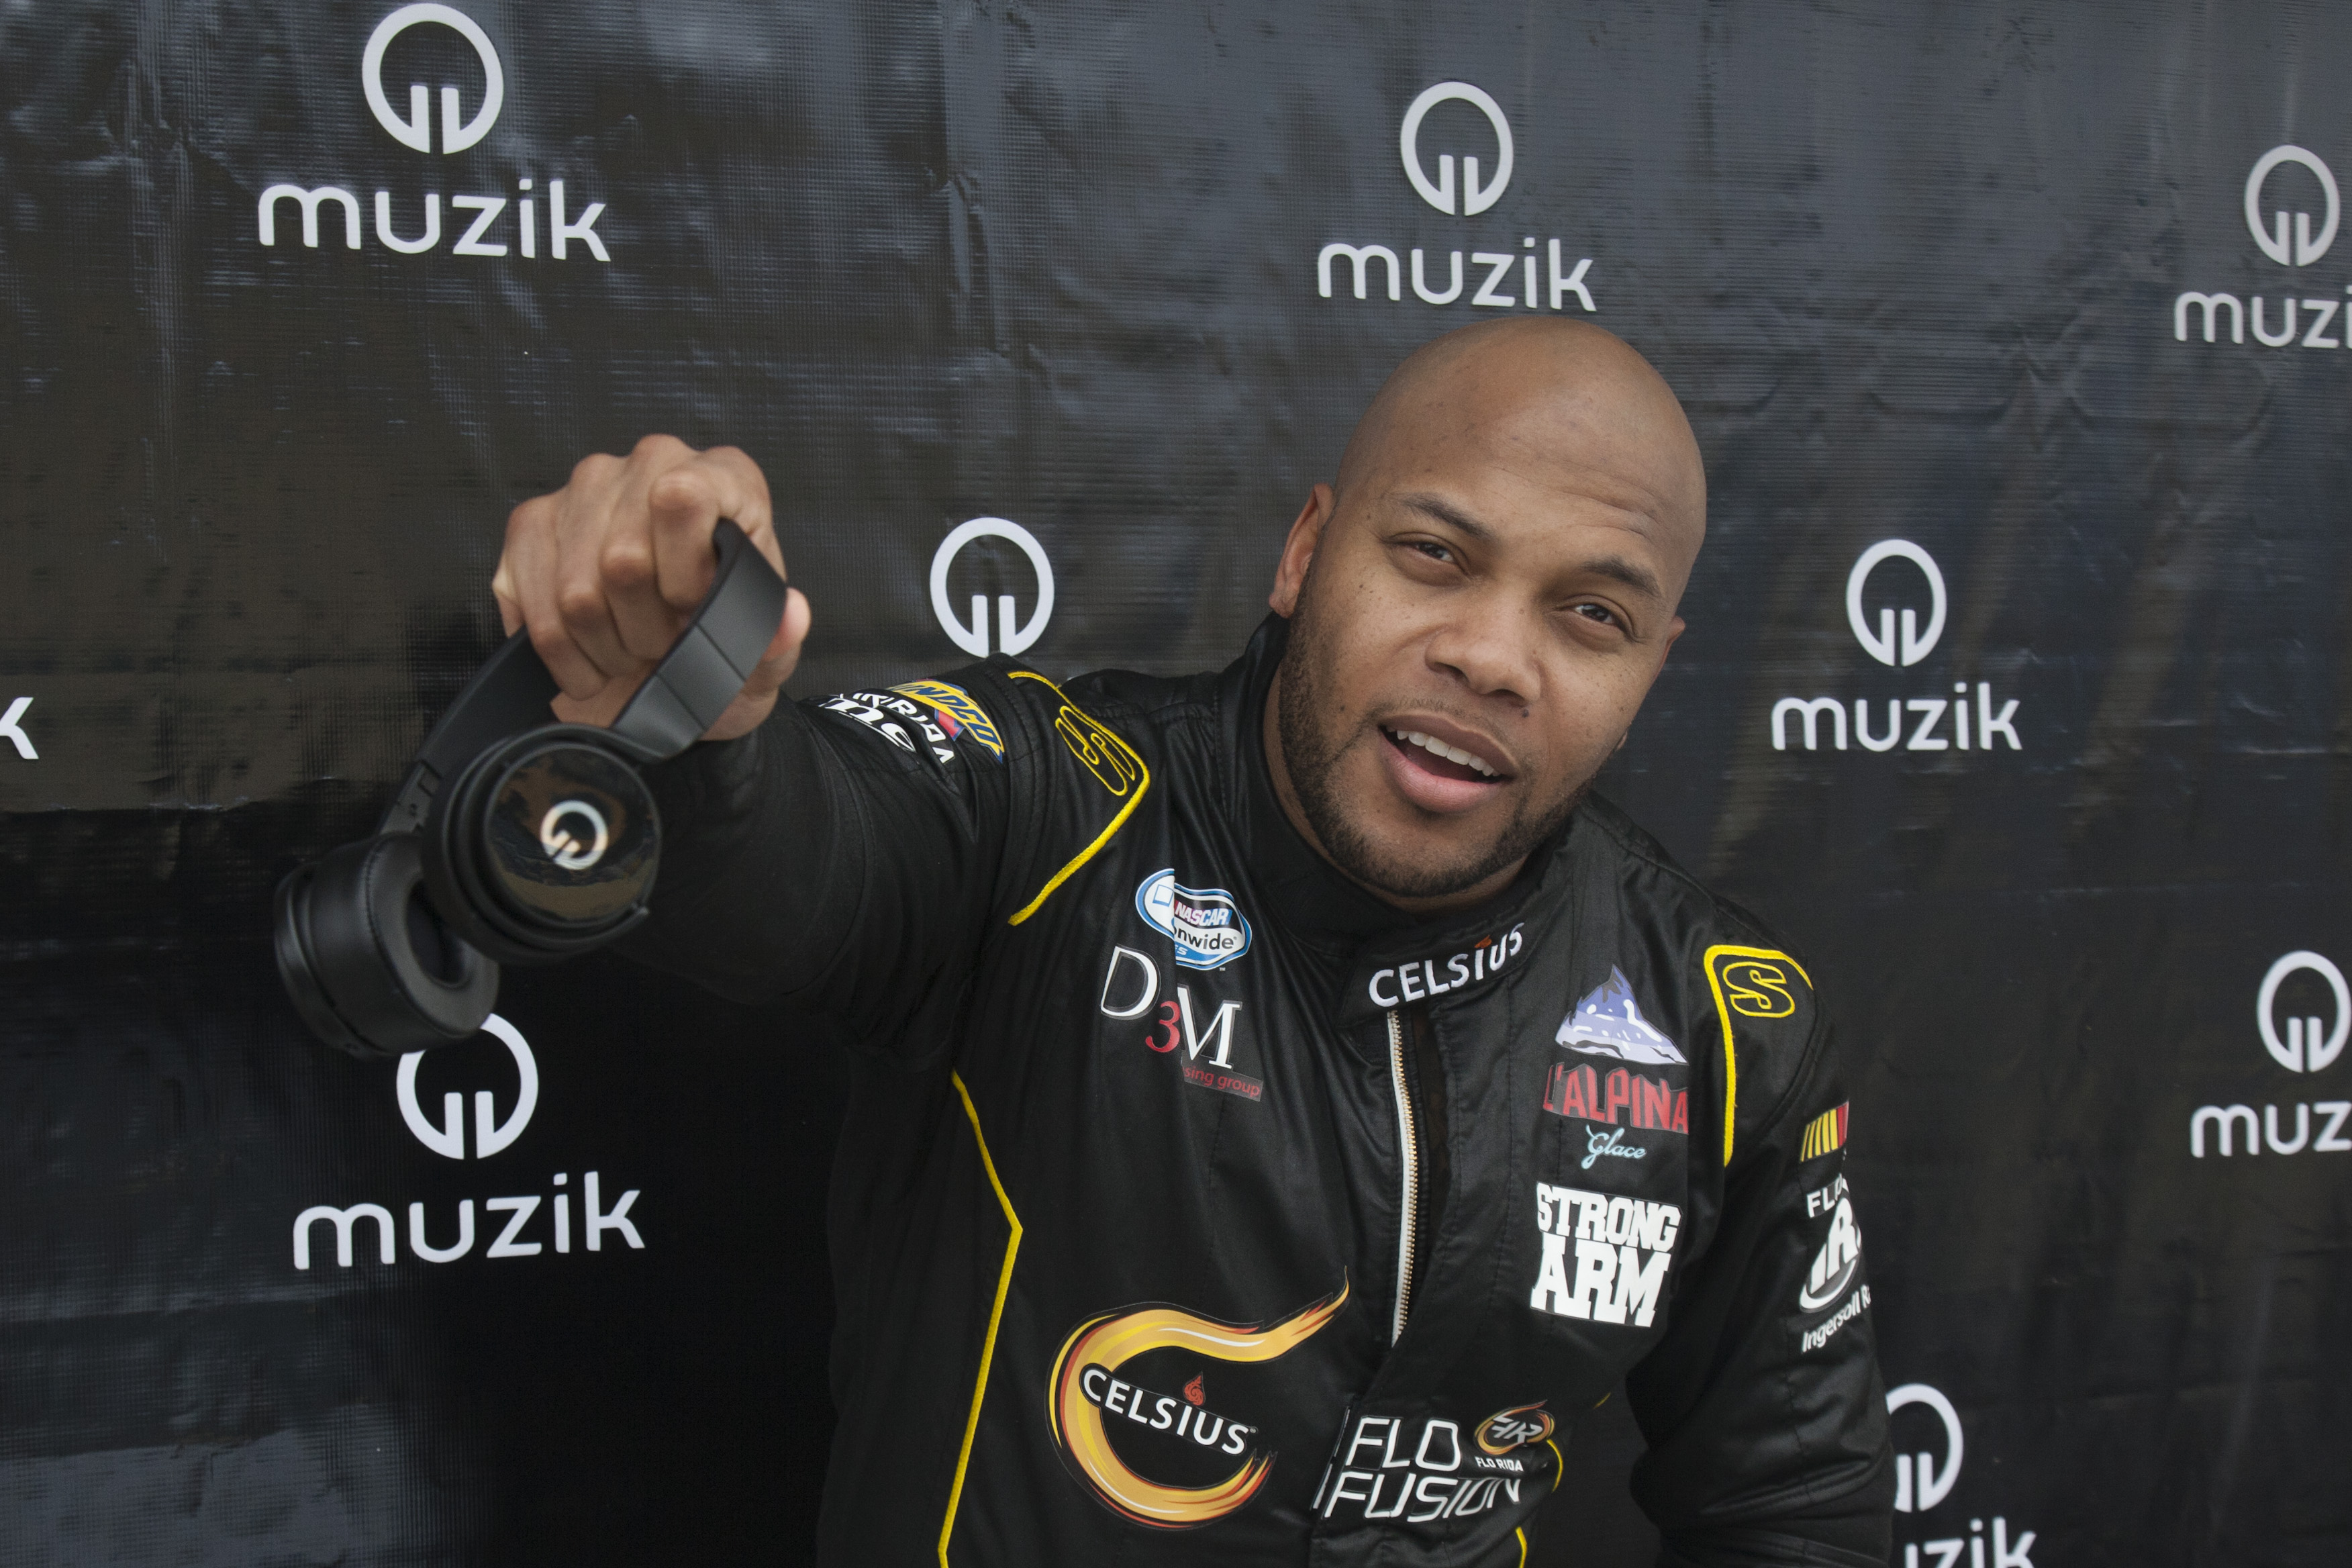 Flo Rida with Muzik Headphones 2